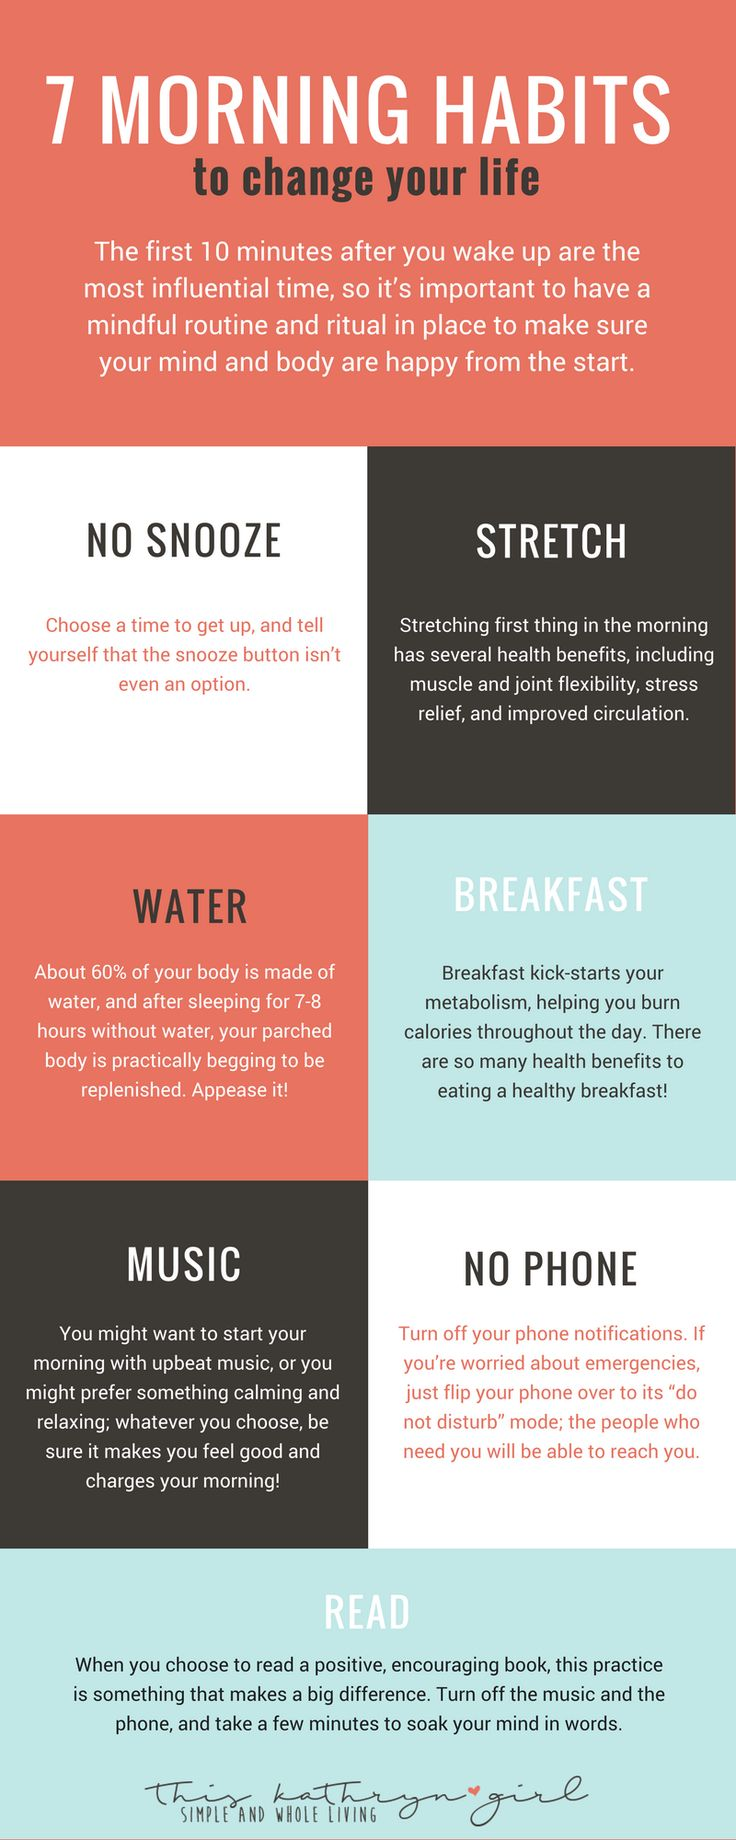 7 Easy Healthy Morning Habits for an awesome morning routine ...repinned für Gewinner! - jetzt gratis Erfolgsratgeber sichern www.ratsucher.de Tap the link now to see our daily meditation, mala beads, and sacred geometry collections. Get 15% off with code GRATITUDE. Free shipping always :